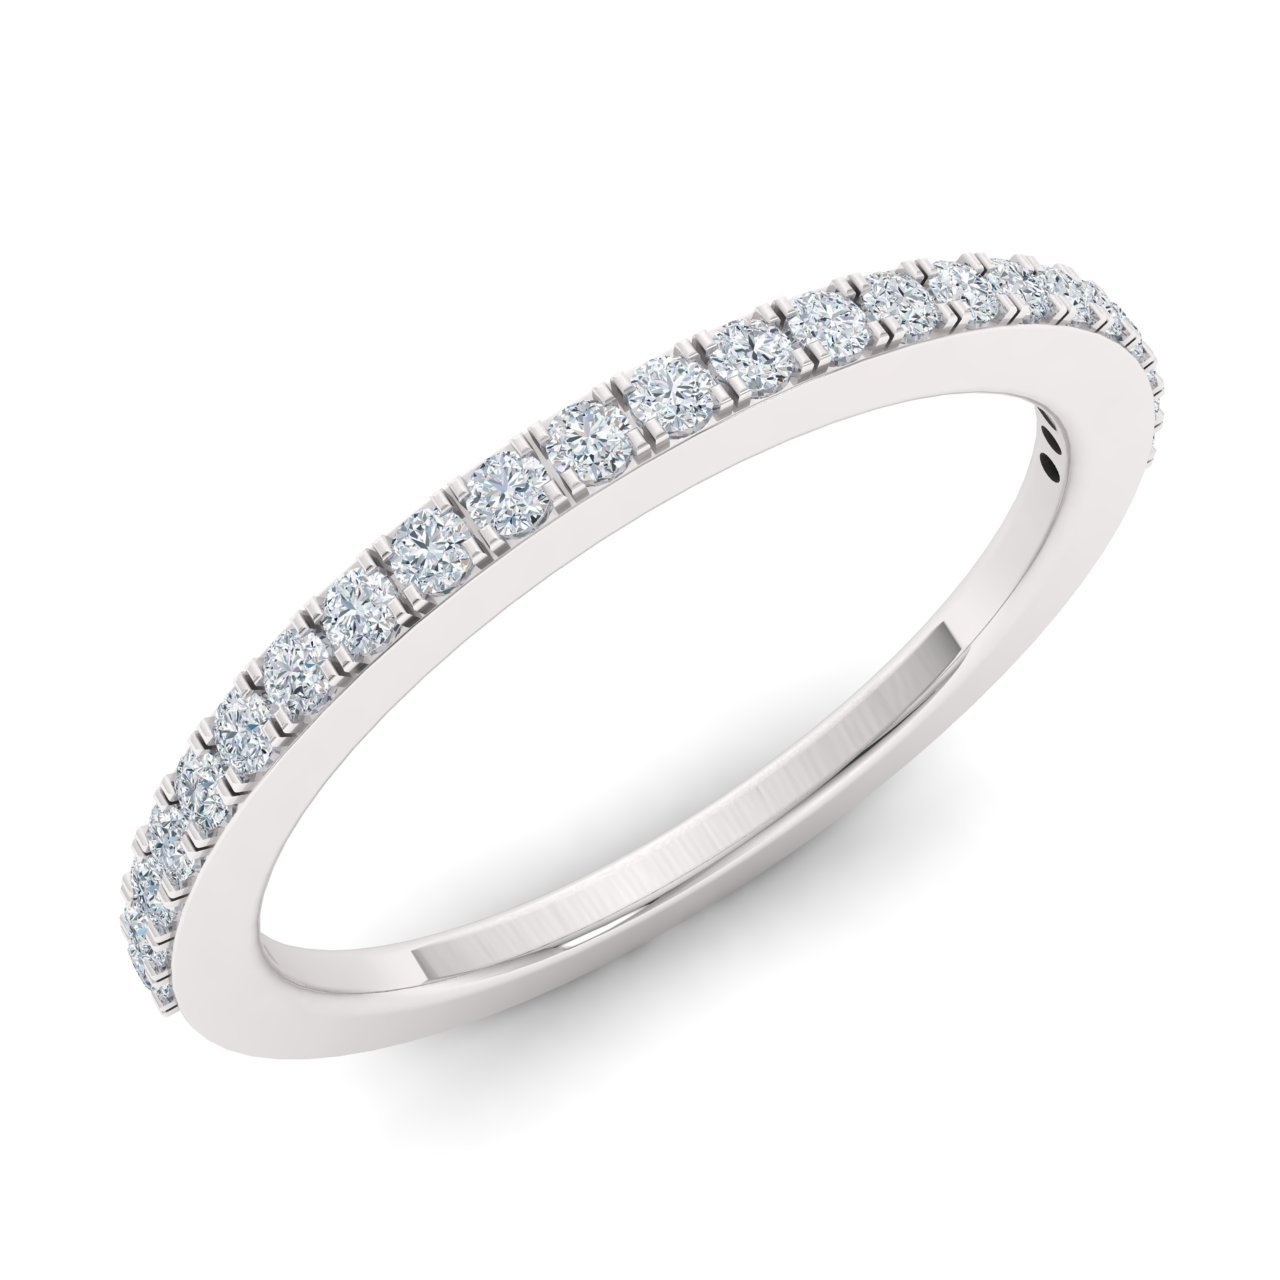 Diamondere Natural and Certified Diamond Wedding Ring in 14K White Gold   0.09 Carat Half Eternity Stackable Band for Women, US Size 6 by Diamondere